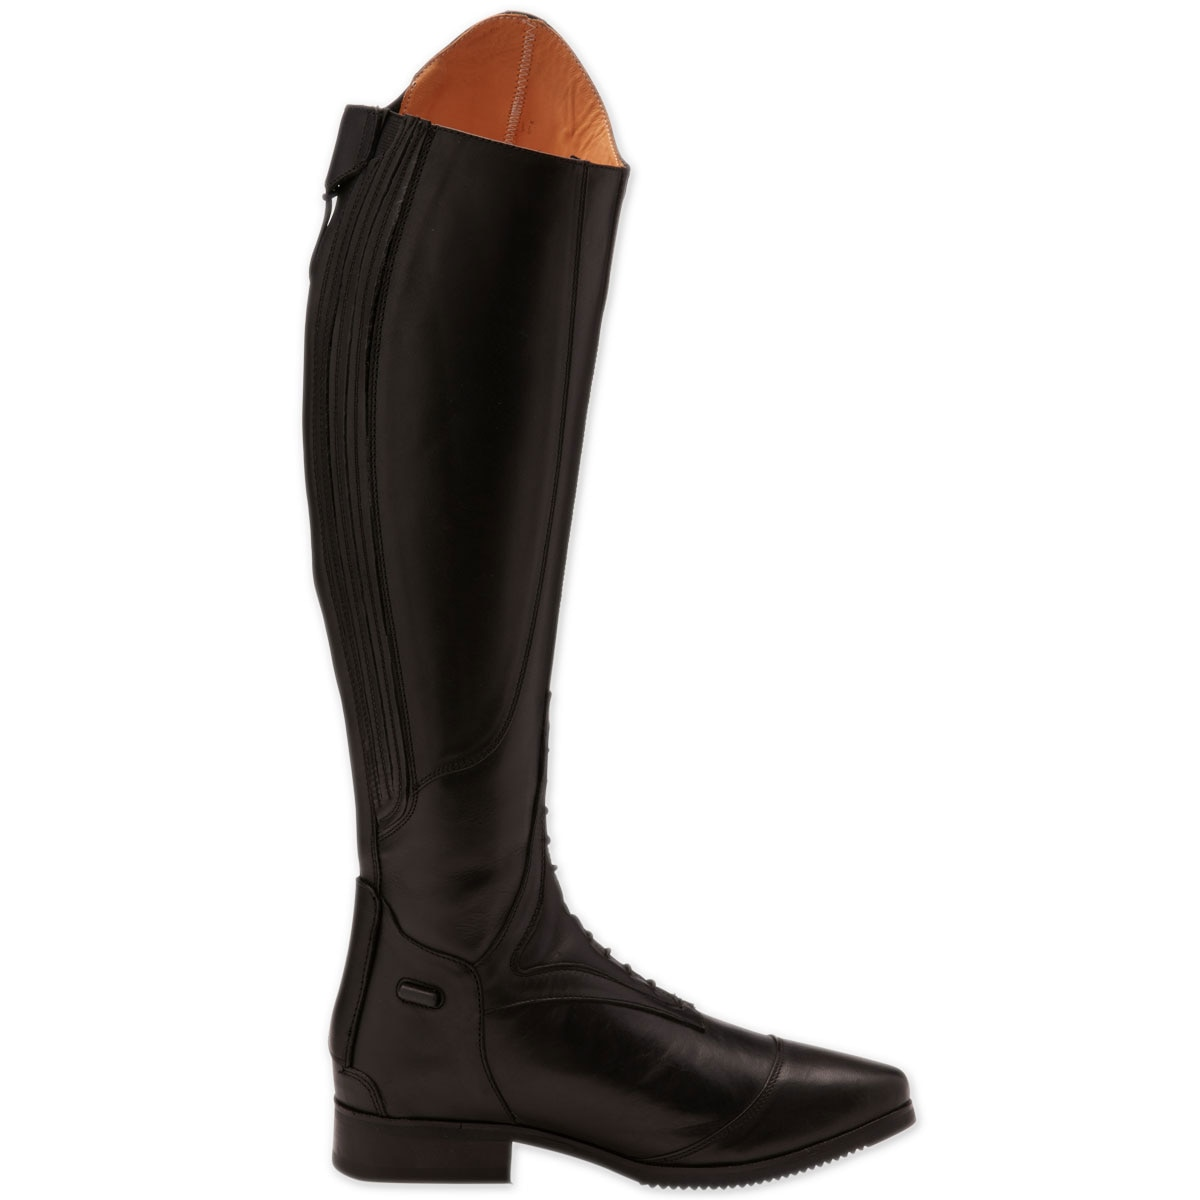 bdd78f87611 Mountain Horse Sovereign Field Boots - Black